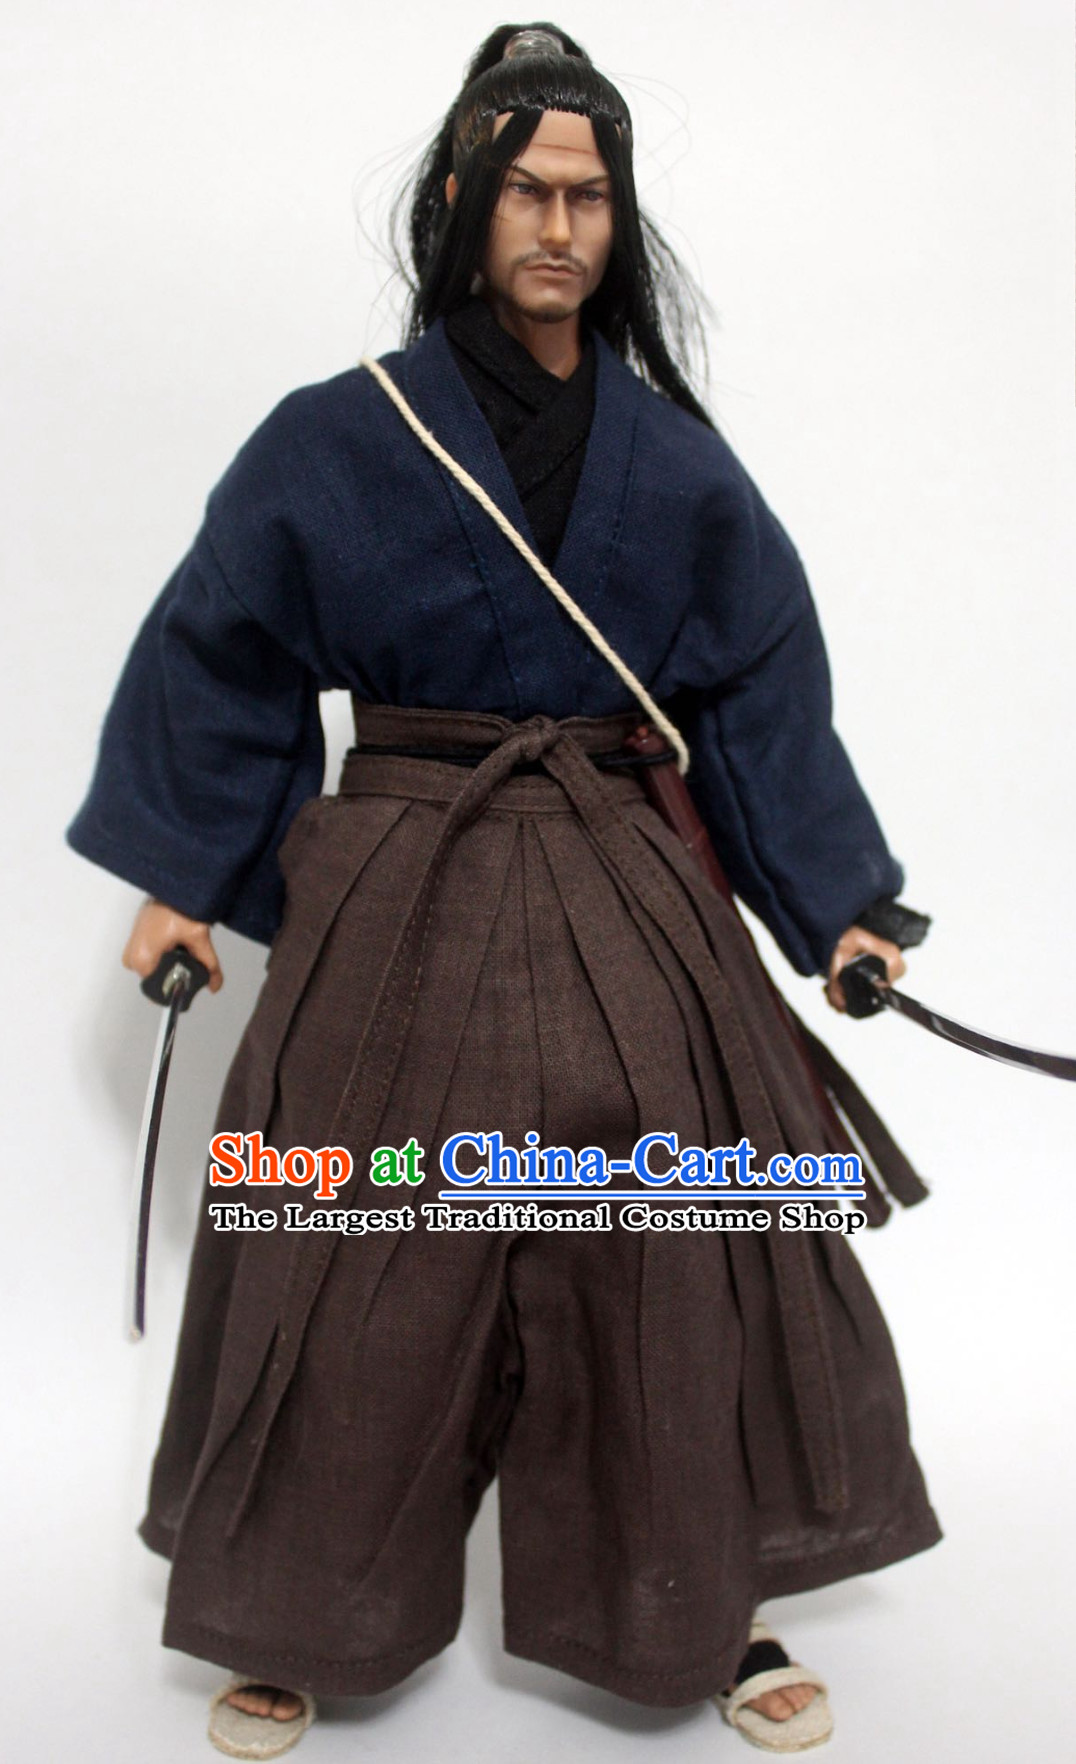 Ancient Japanese Warrior Costume Samurai Costumes Mitamoto Musashi Costume Kimono Clothing Complete Set